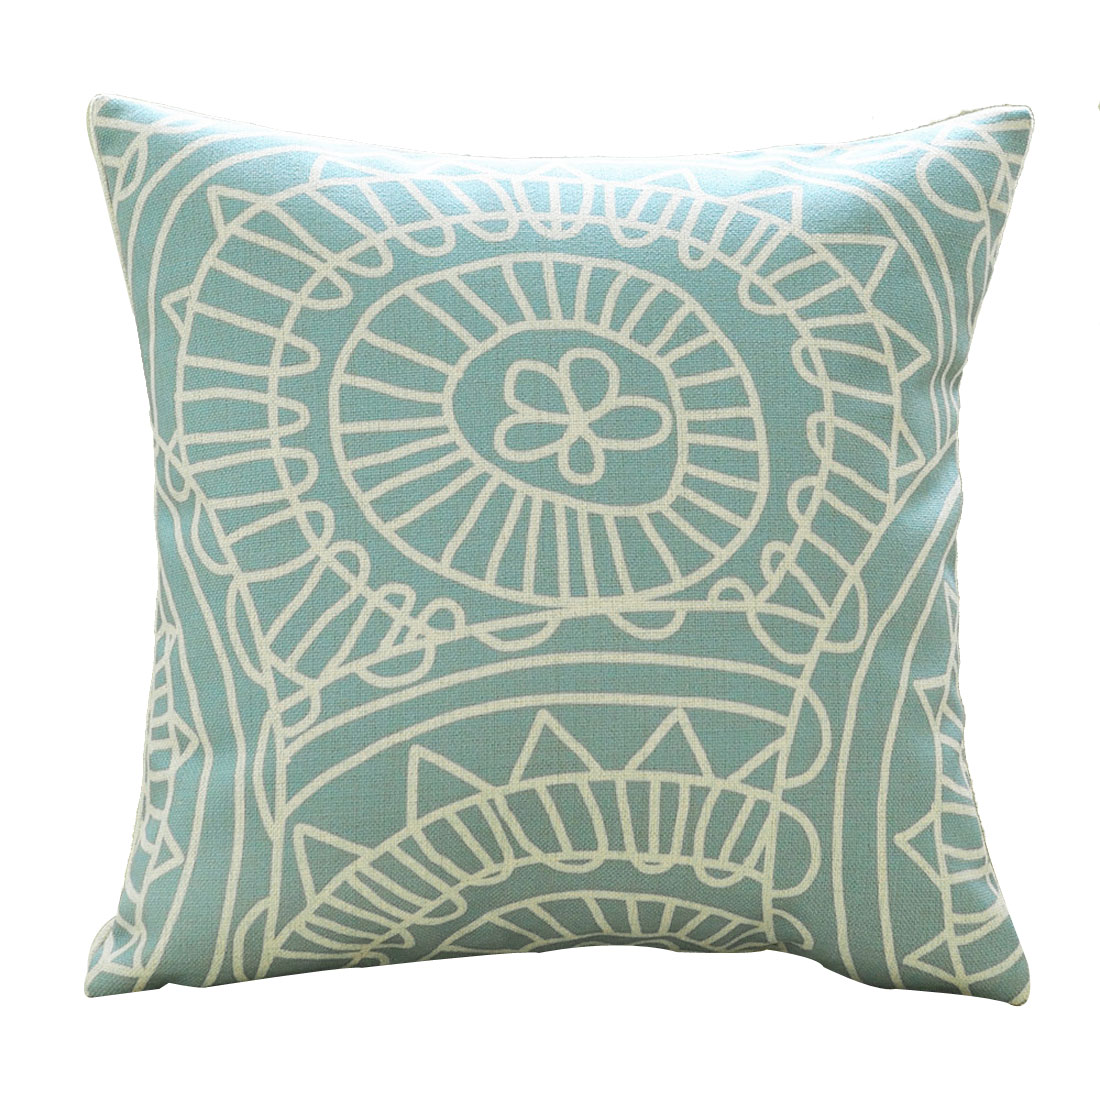 Sofa Cotton Linen Geometric Pattern Retro Style Pillow Cushion Case Cover Pillowcase